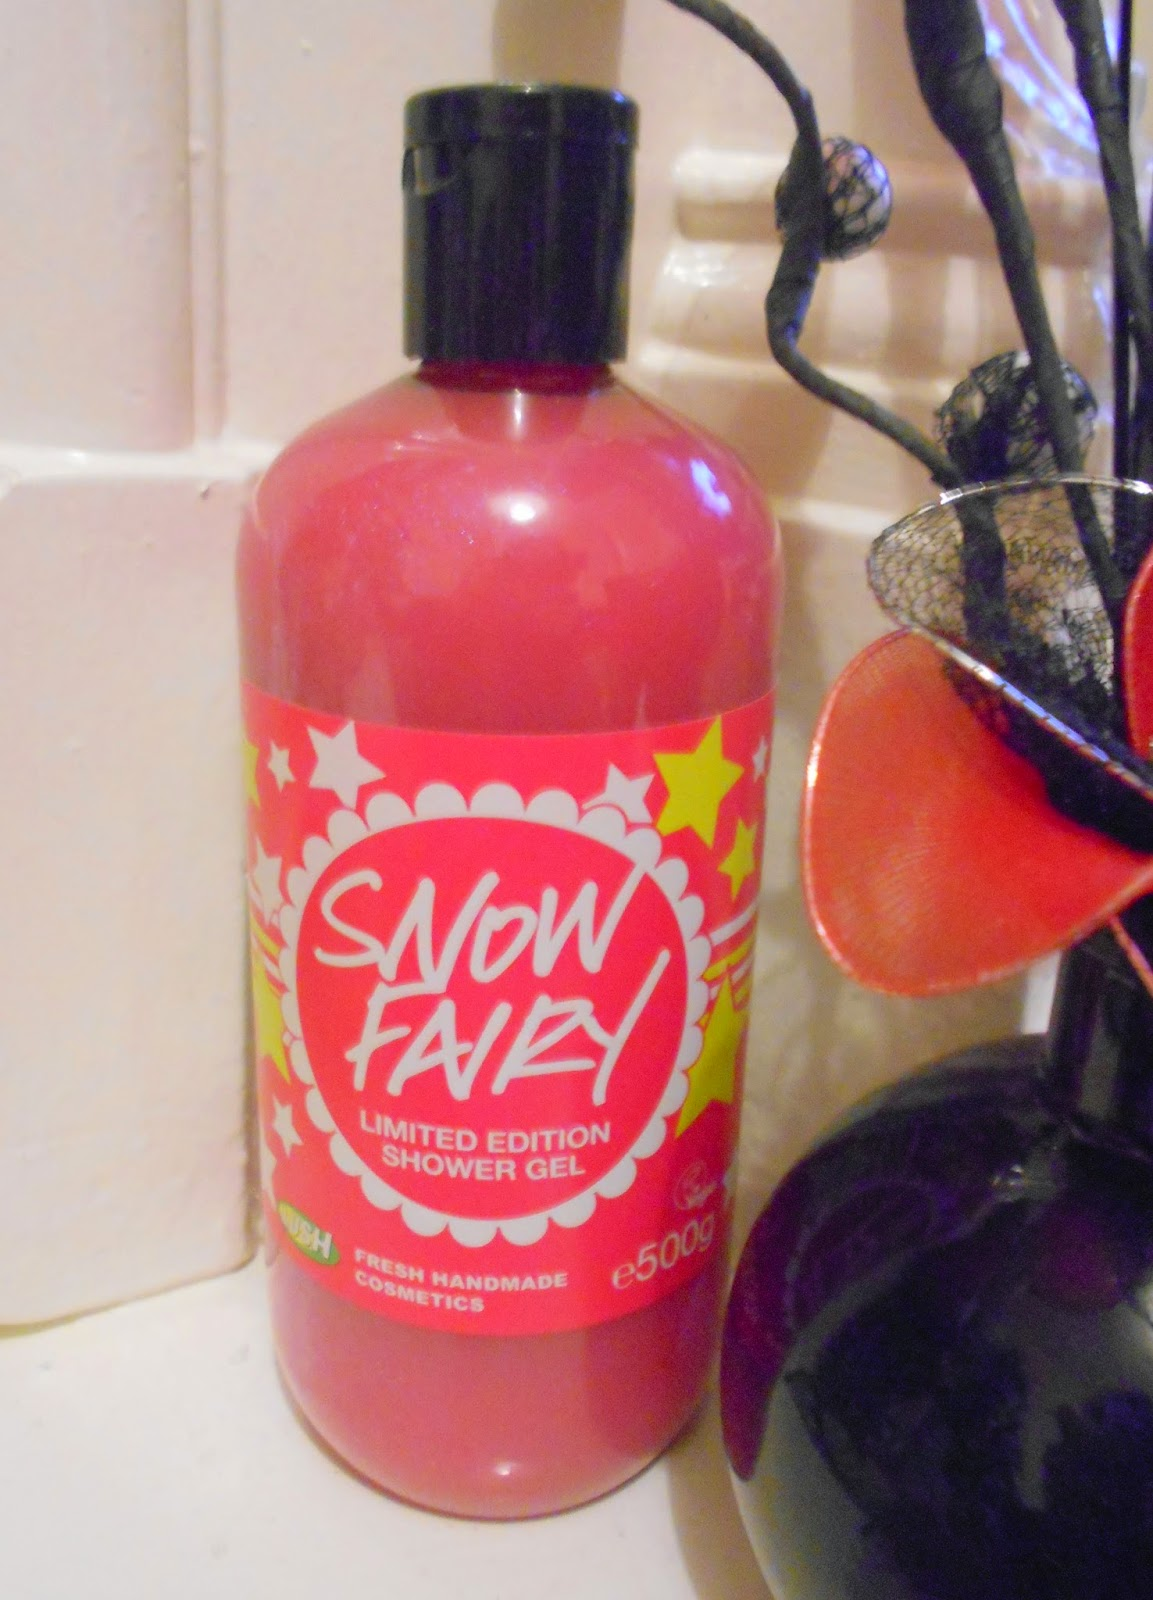 Lush - Snow Fairy Limited Edition Shower Gel